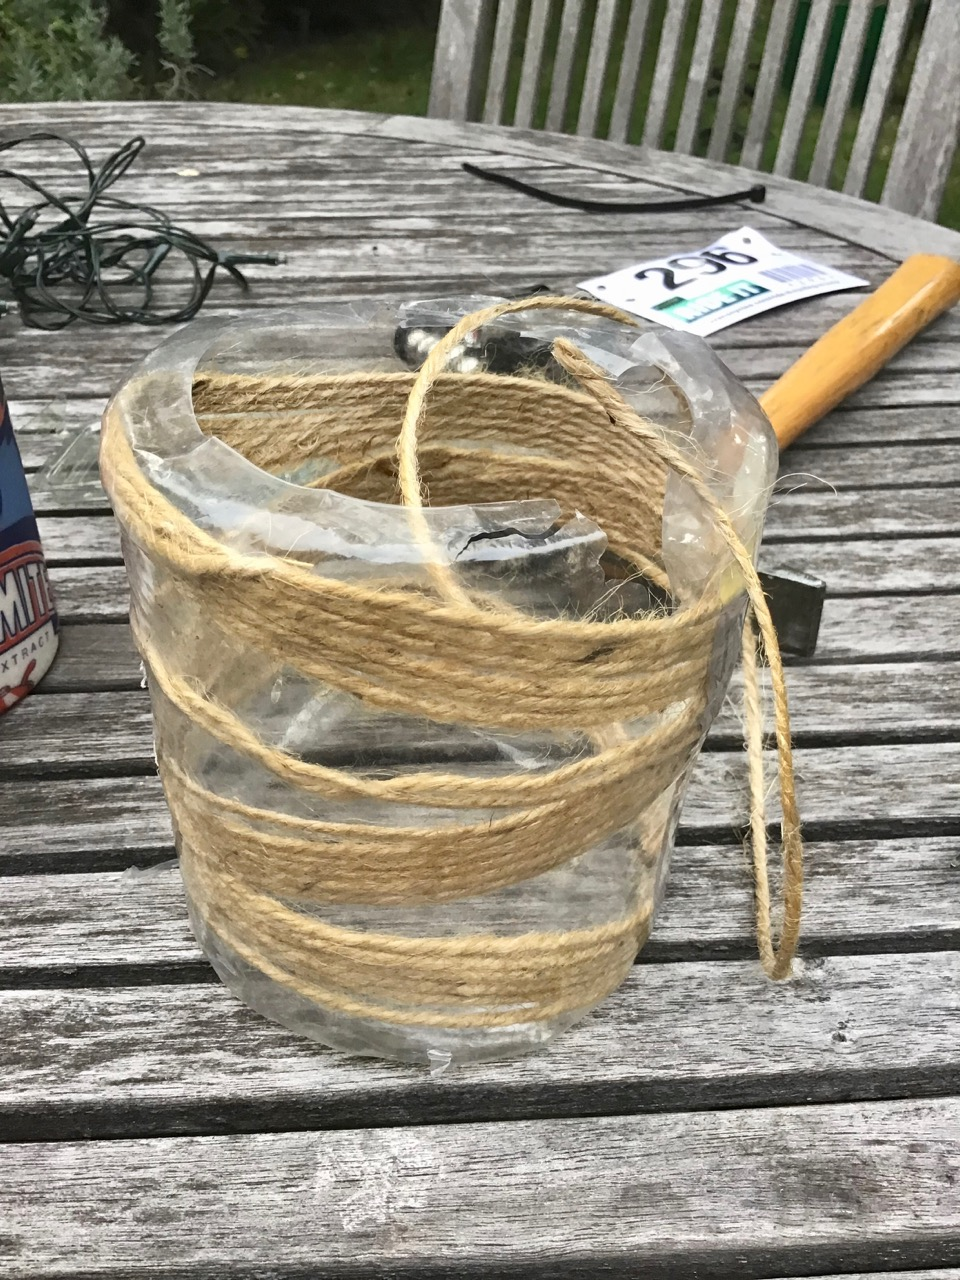 twine - my garden accessory of the month